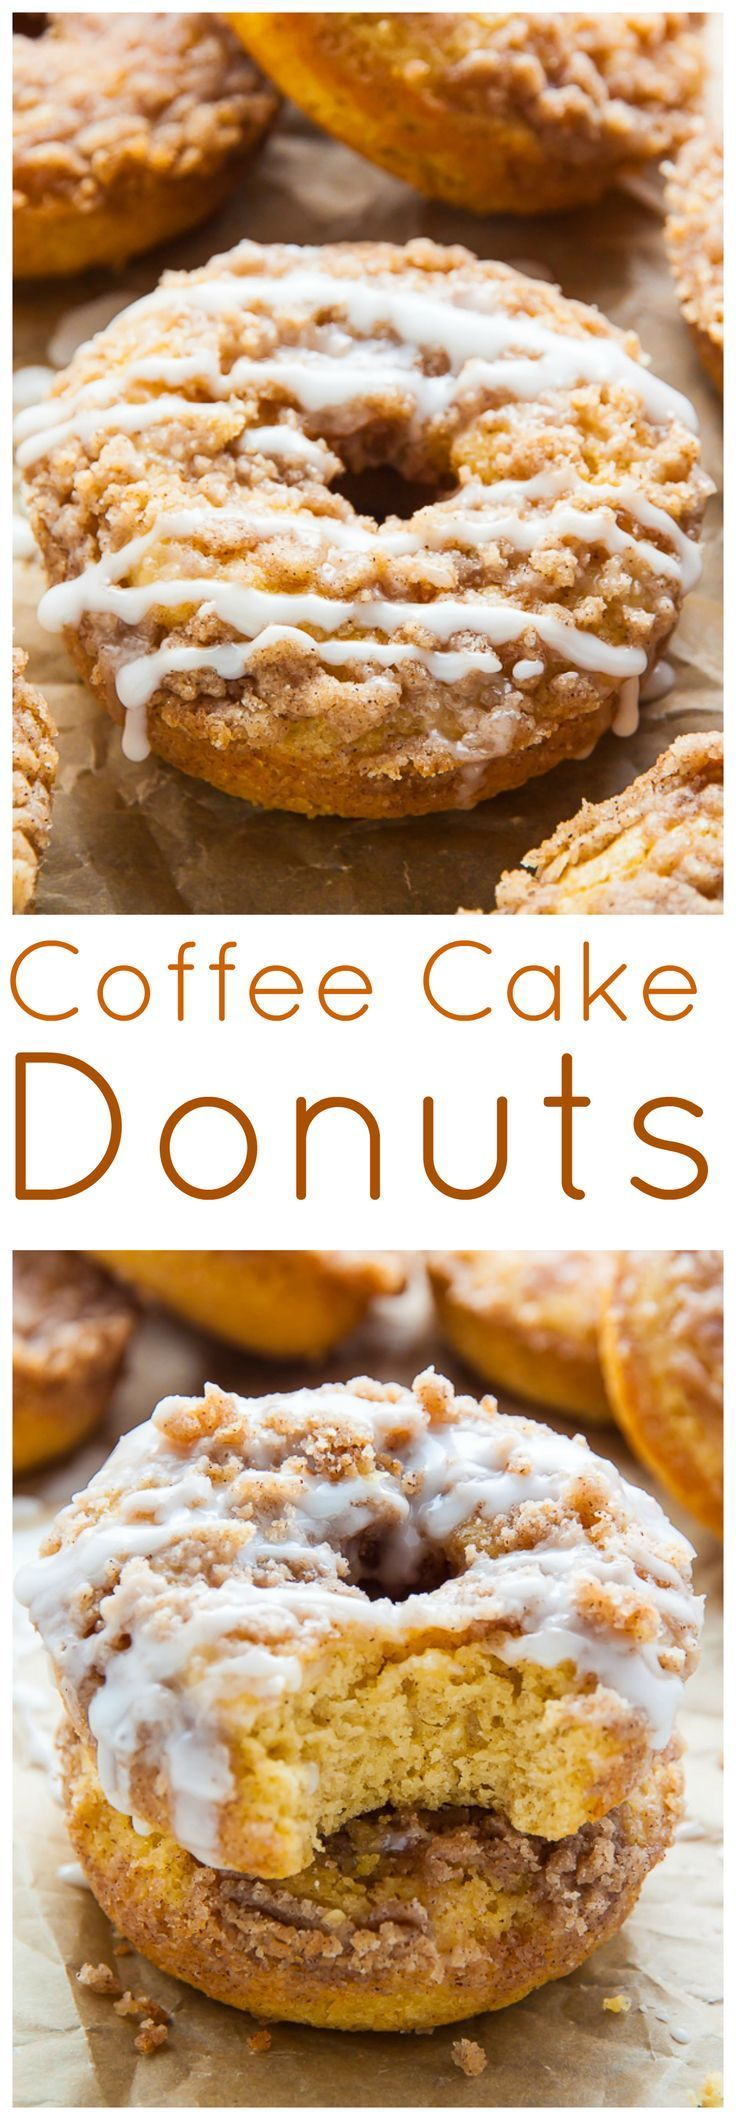 25+ best Donut recipes ideas on Pinterest | Yummy donuts ...